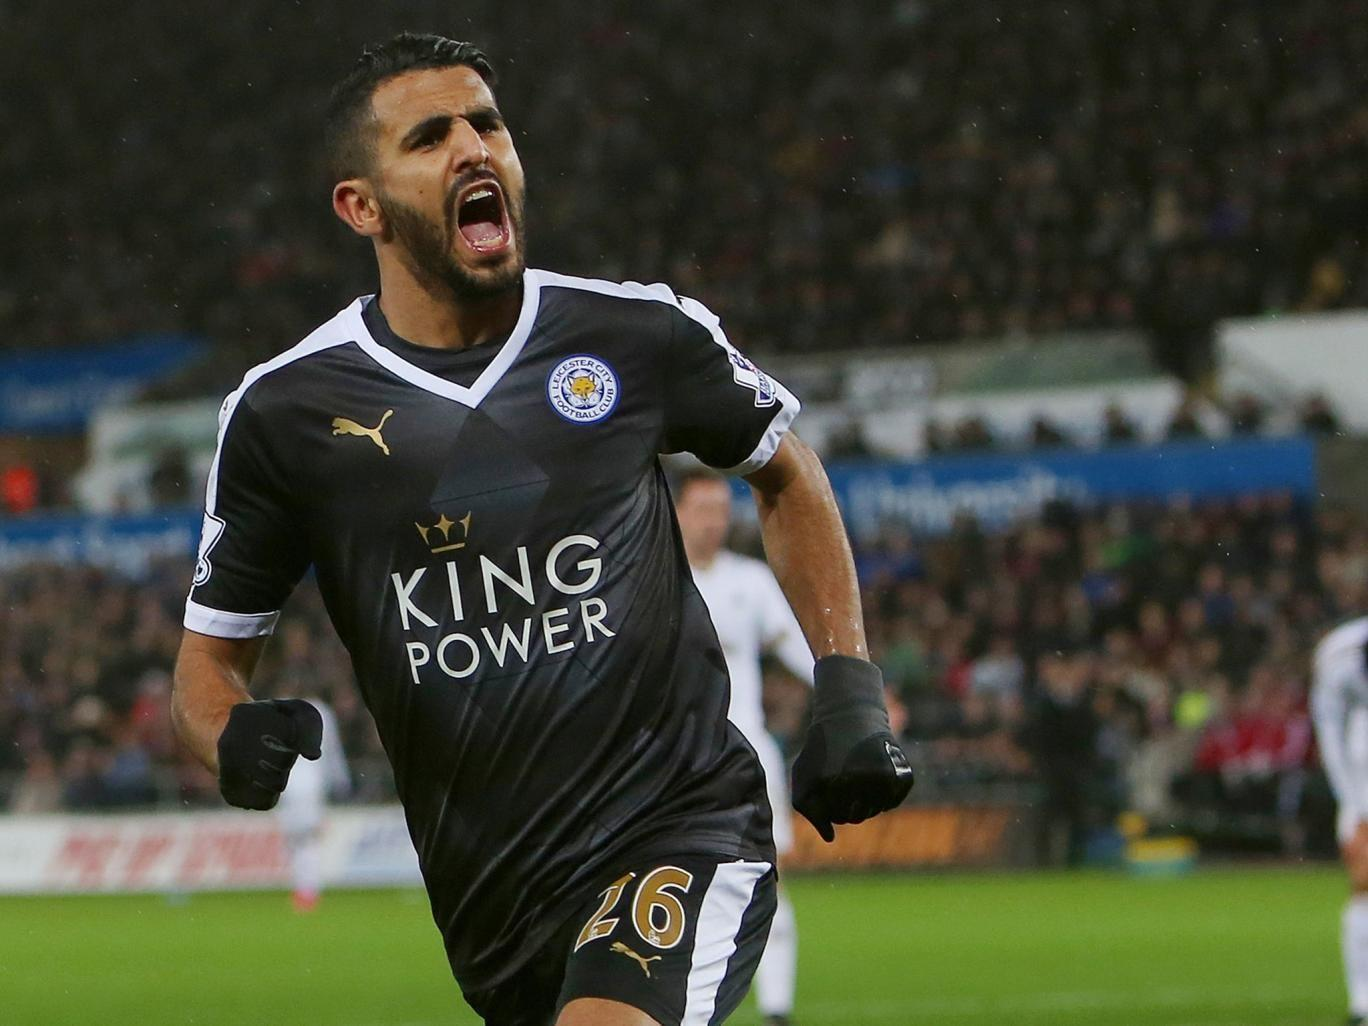 Midfielder Riyad Mahrez has been a critical part of Leicester City's shocking run to the Premier League Title this year.